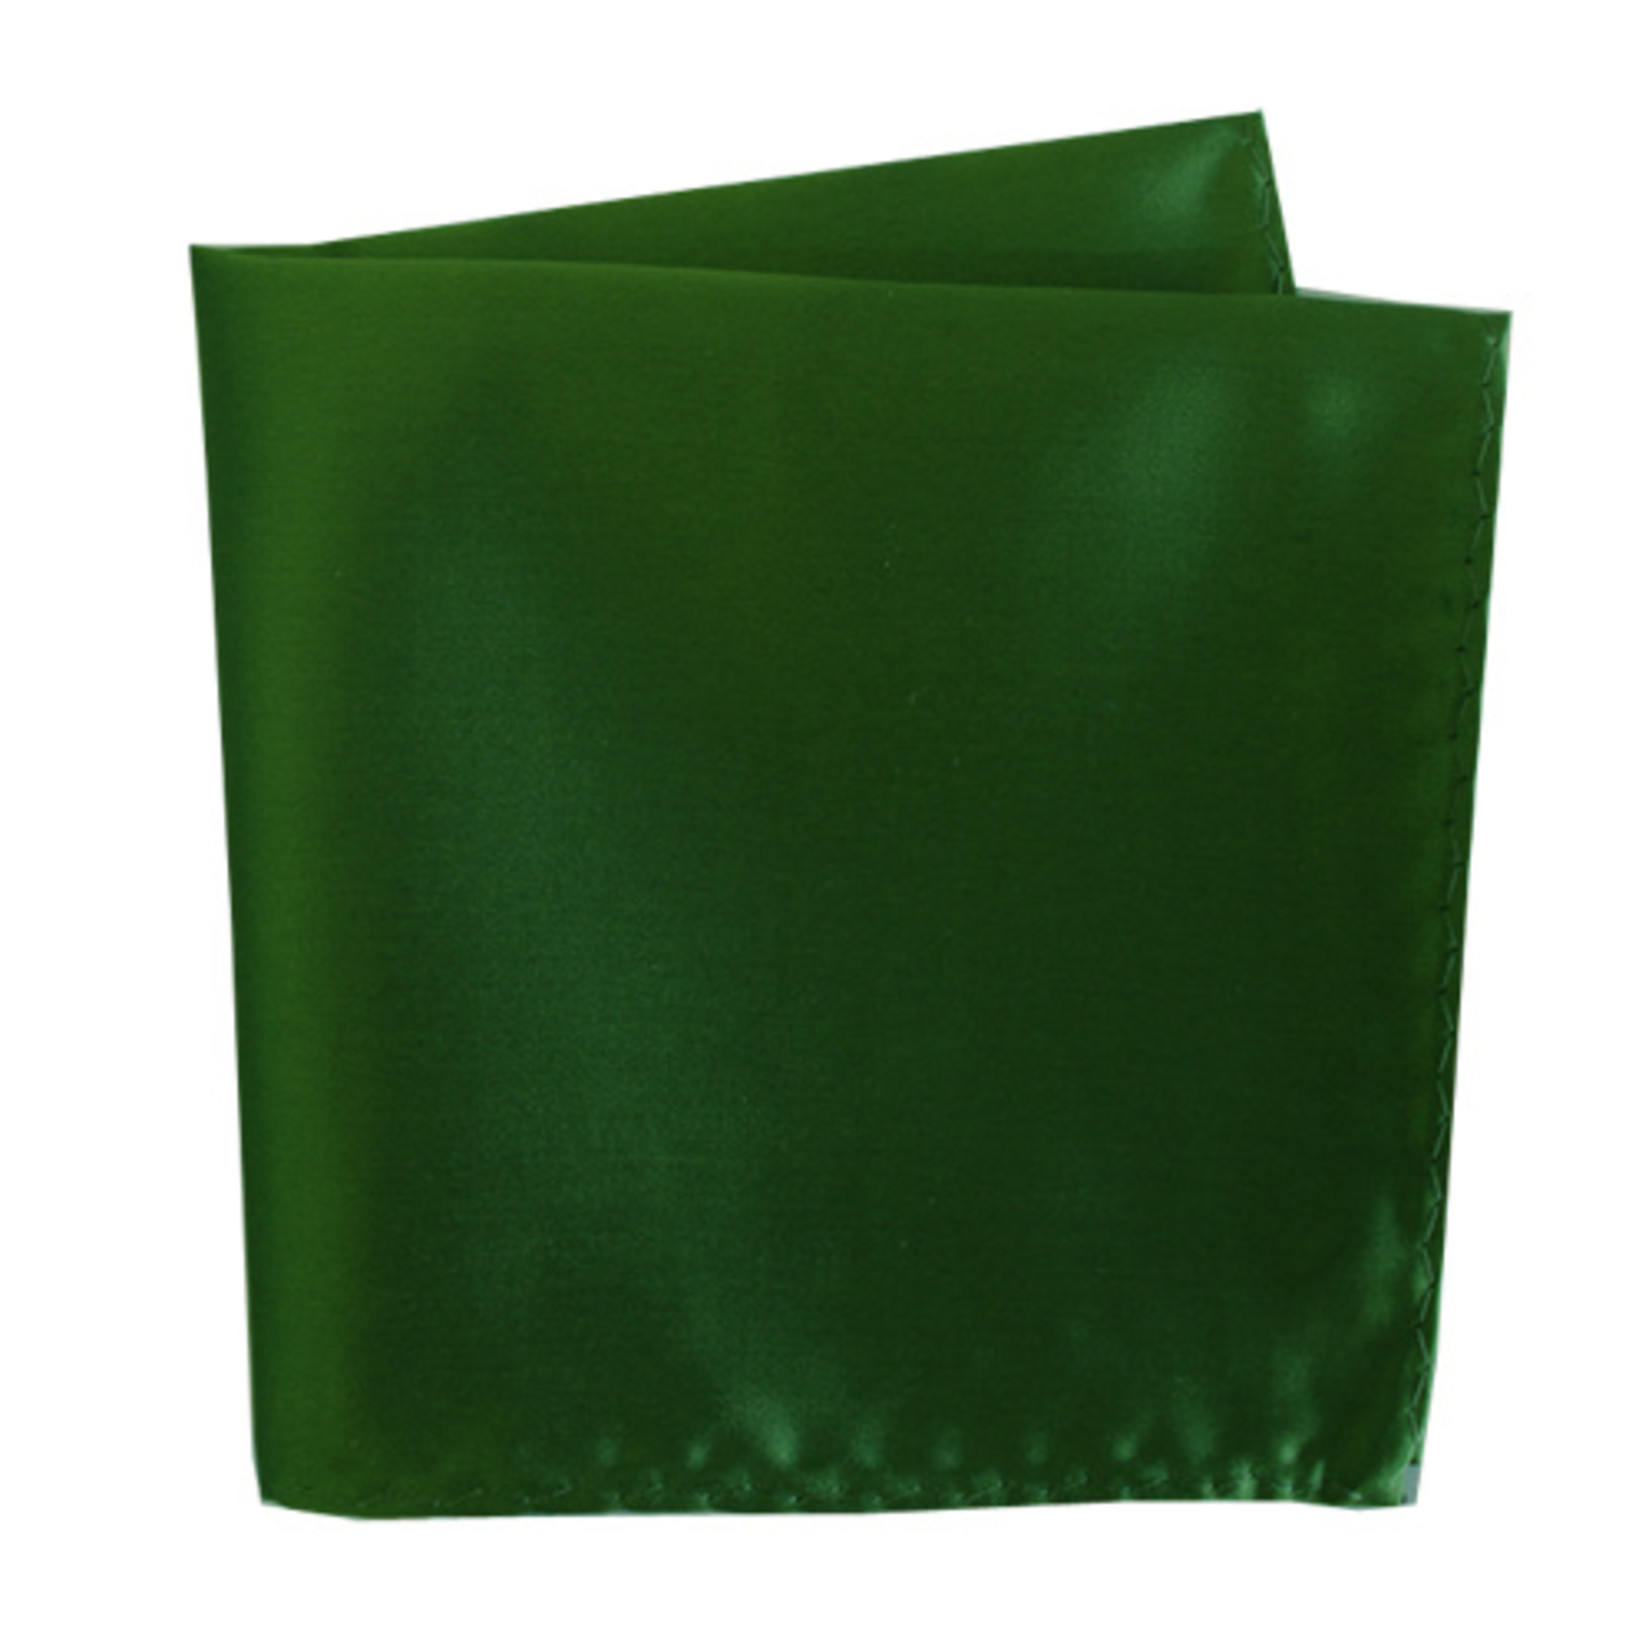 Knotz M100PSQ-25 Solid Green Pocket Square